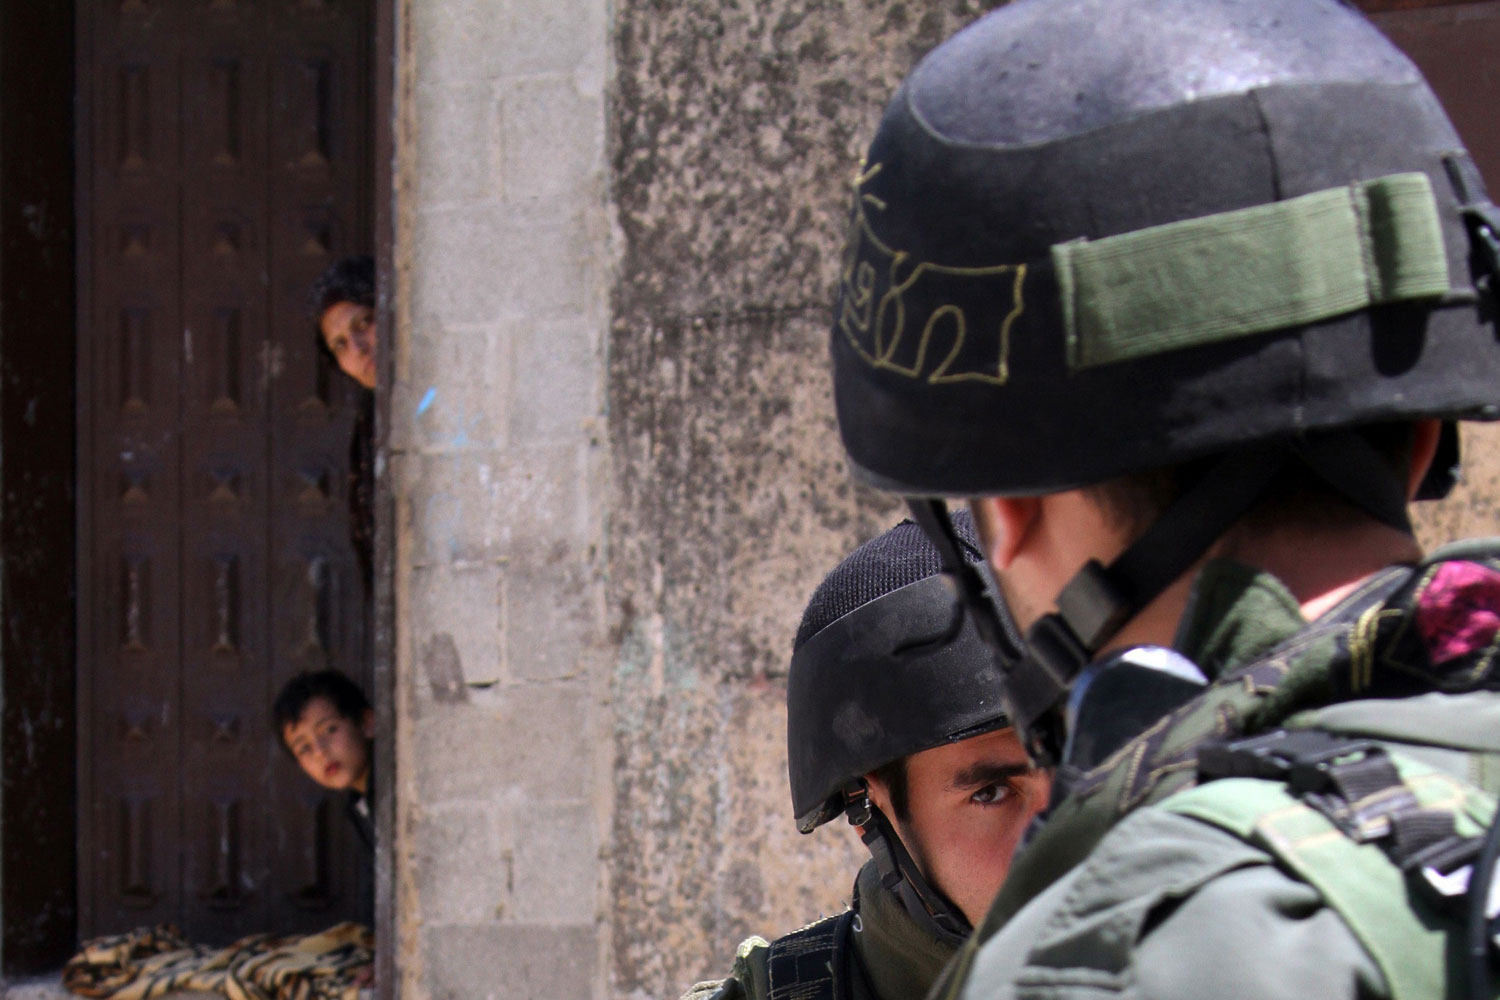 April 12, 2011. Palestinians watch Israeli troops in a military operation searching for suspects during a curfew in the West Bank village of Awarta, near Nablus. The Israeli army has repeatedly invaded the village following the murder of five members of one family in a nearby Jewish settlement.